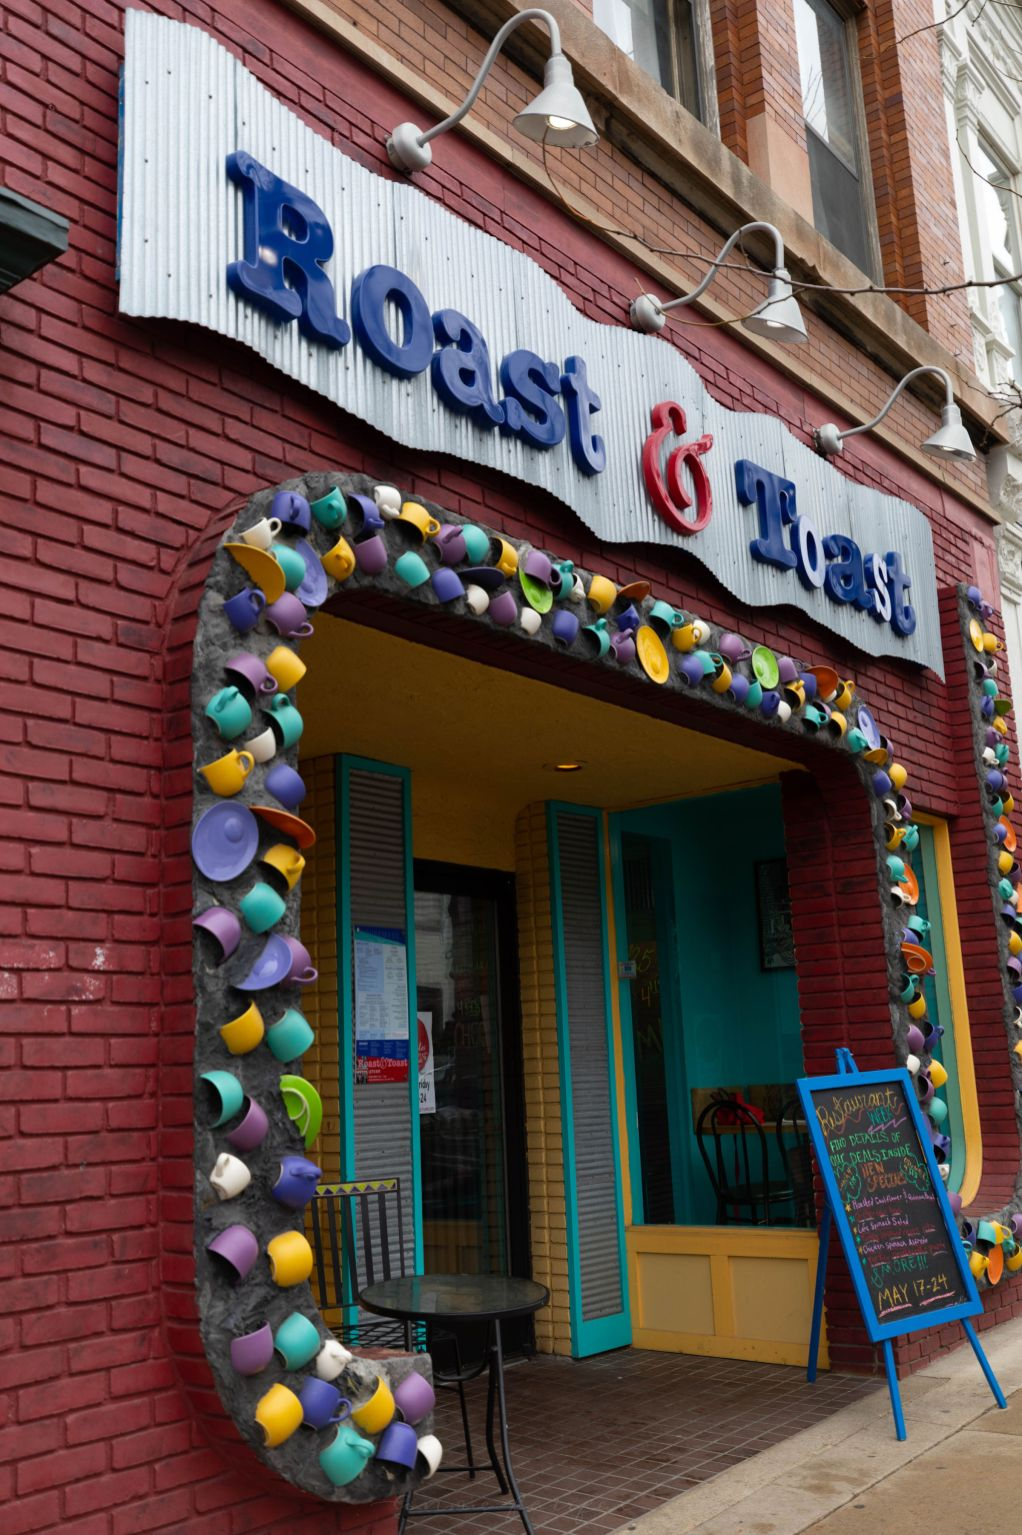 Roast & Toast Café in Petoskey Michigan Official Travel Guide Home of Million Dollar Sunsets Researched, Photographed and Written by Annie Fairfax